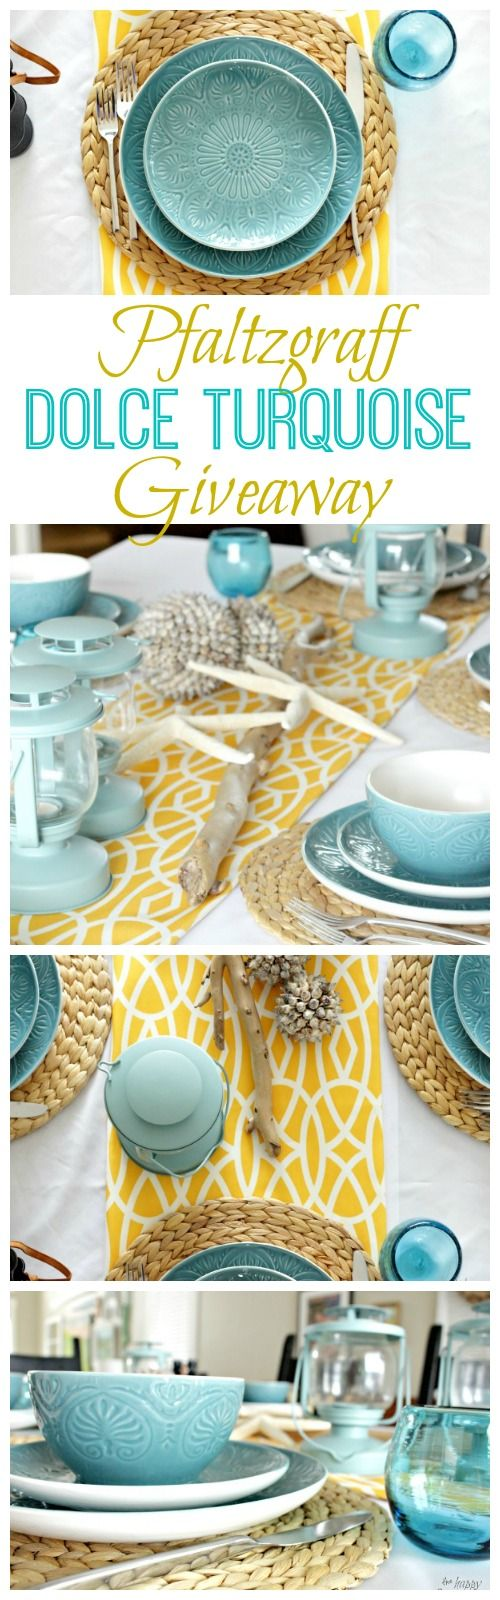 Waves & Sunshine Beachy Tablescape {with Pfaltzgraff Dolce Turquoise Giveaway!!}